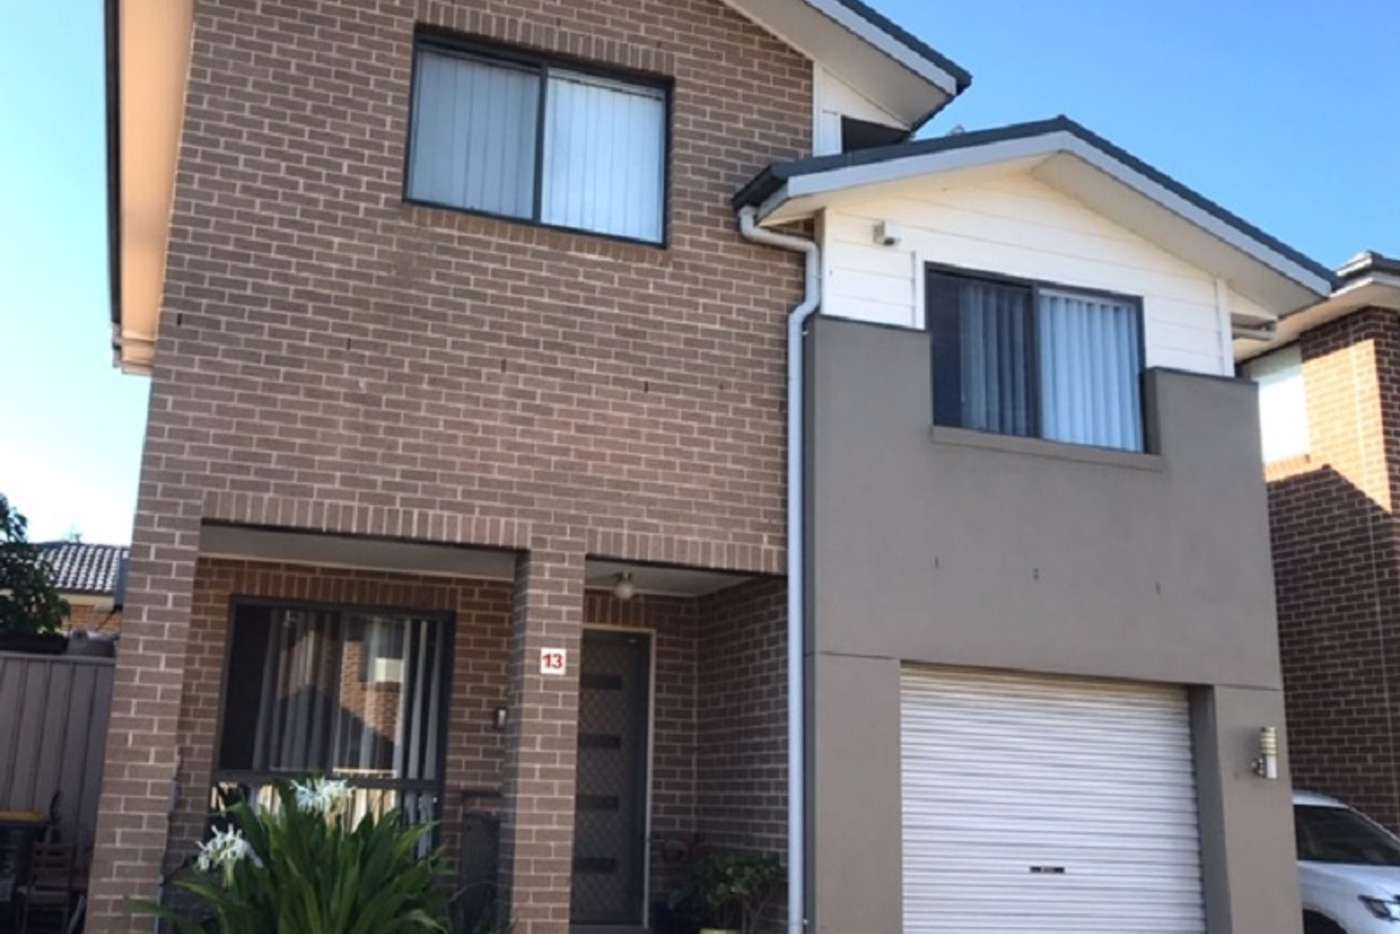 Main view of Homely townhouse listing, 13/81 Metella Road, Toongabbie NSW 2146